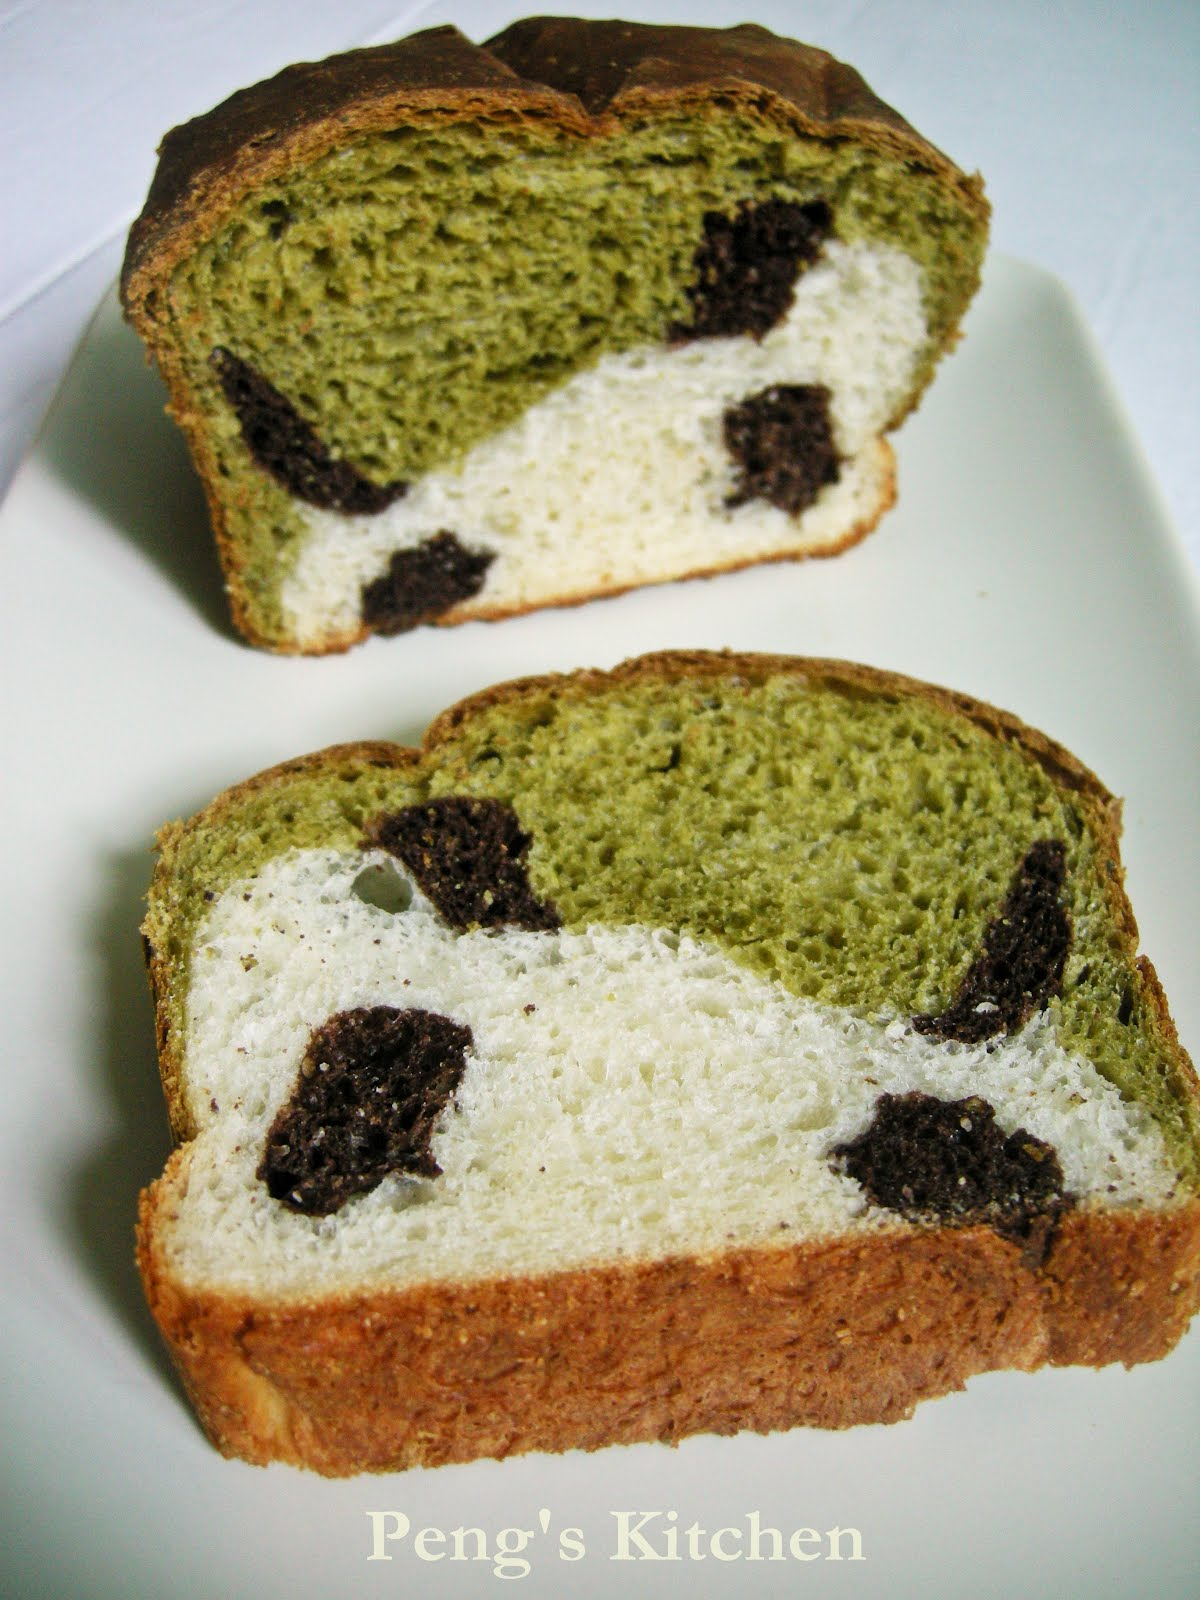 Peng's Kitchen: Panda Bread